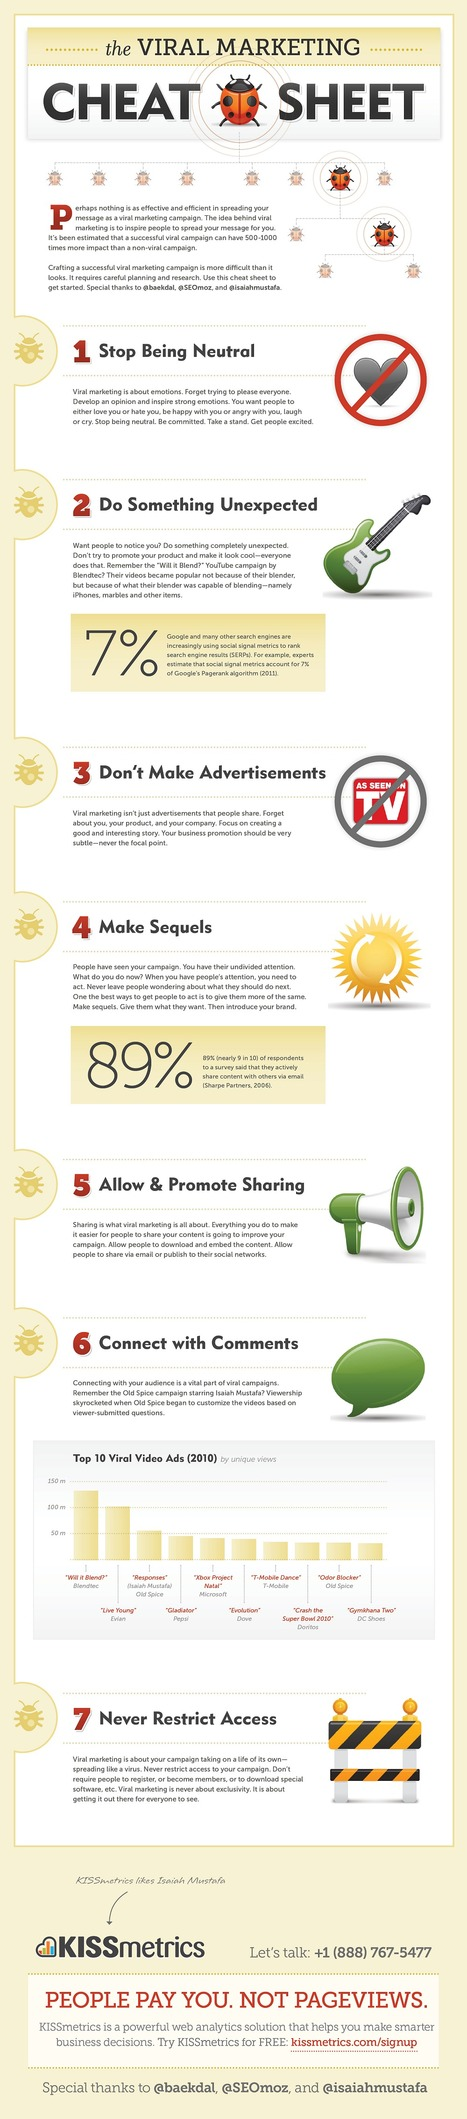 The Complete Viral Marketing Cheat Sheet [Infographic]   Work  Life Balance   Scoop.it